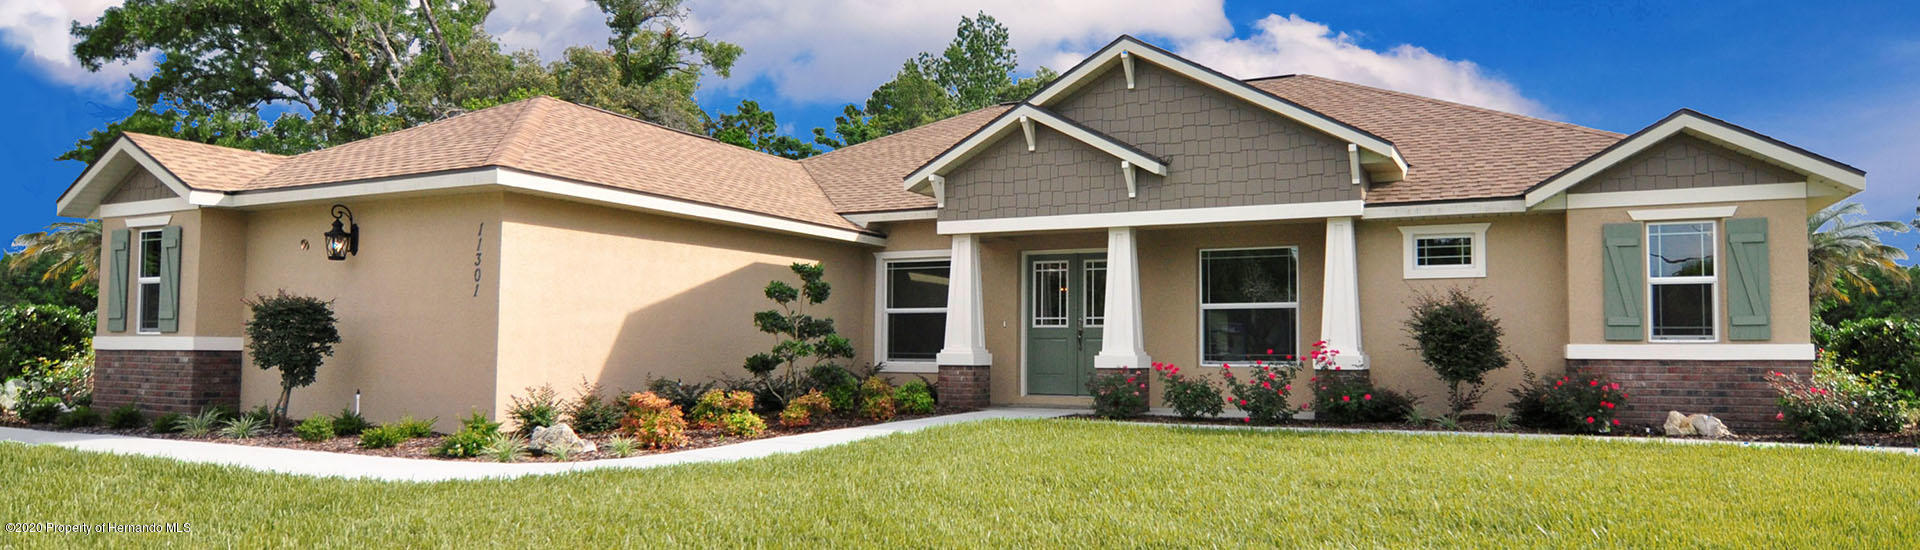 Listing Details for 00 Hawks Nest Trail, Weeki Wachee, FL 34614